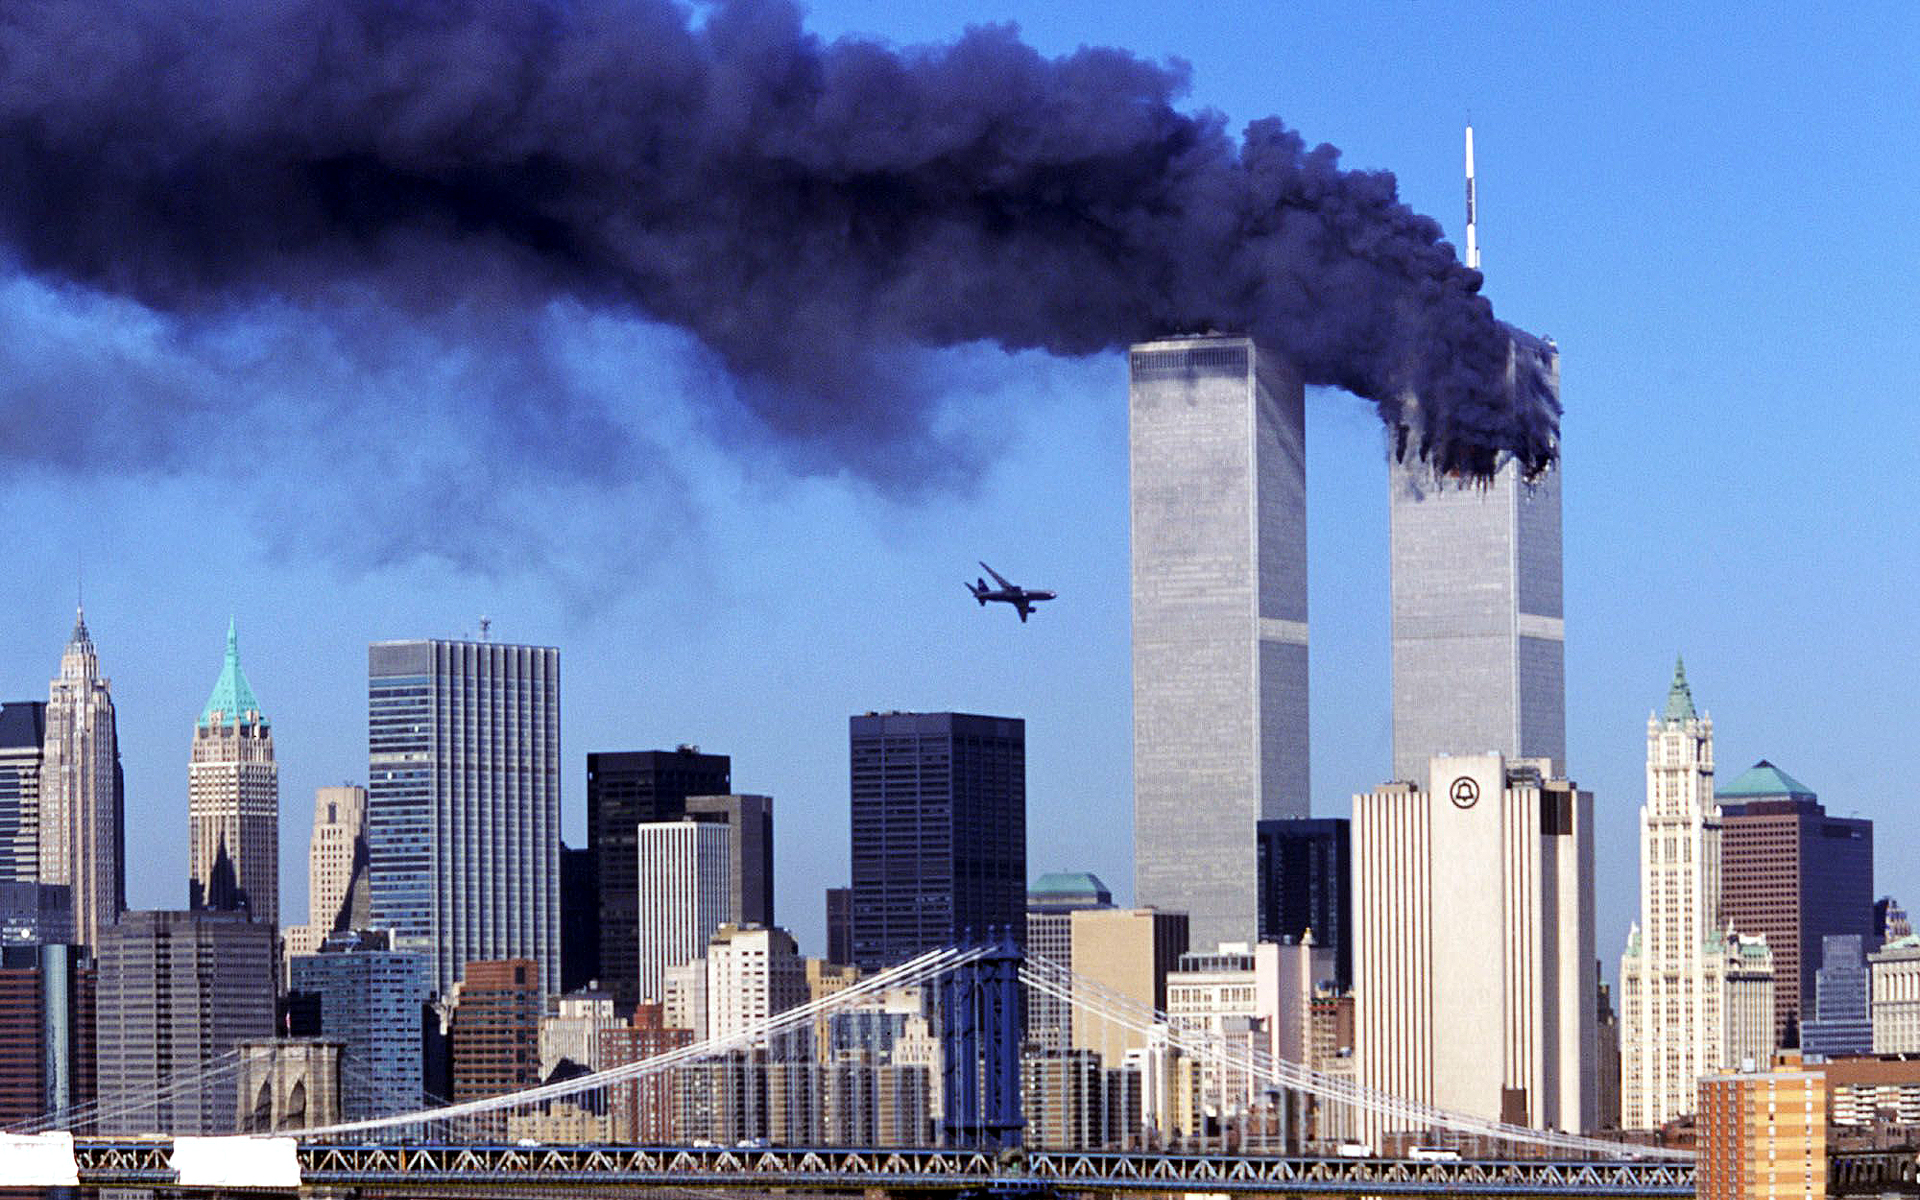 an analysis of my childhood experience witnessing the september 11 terrorist attacks